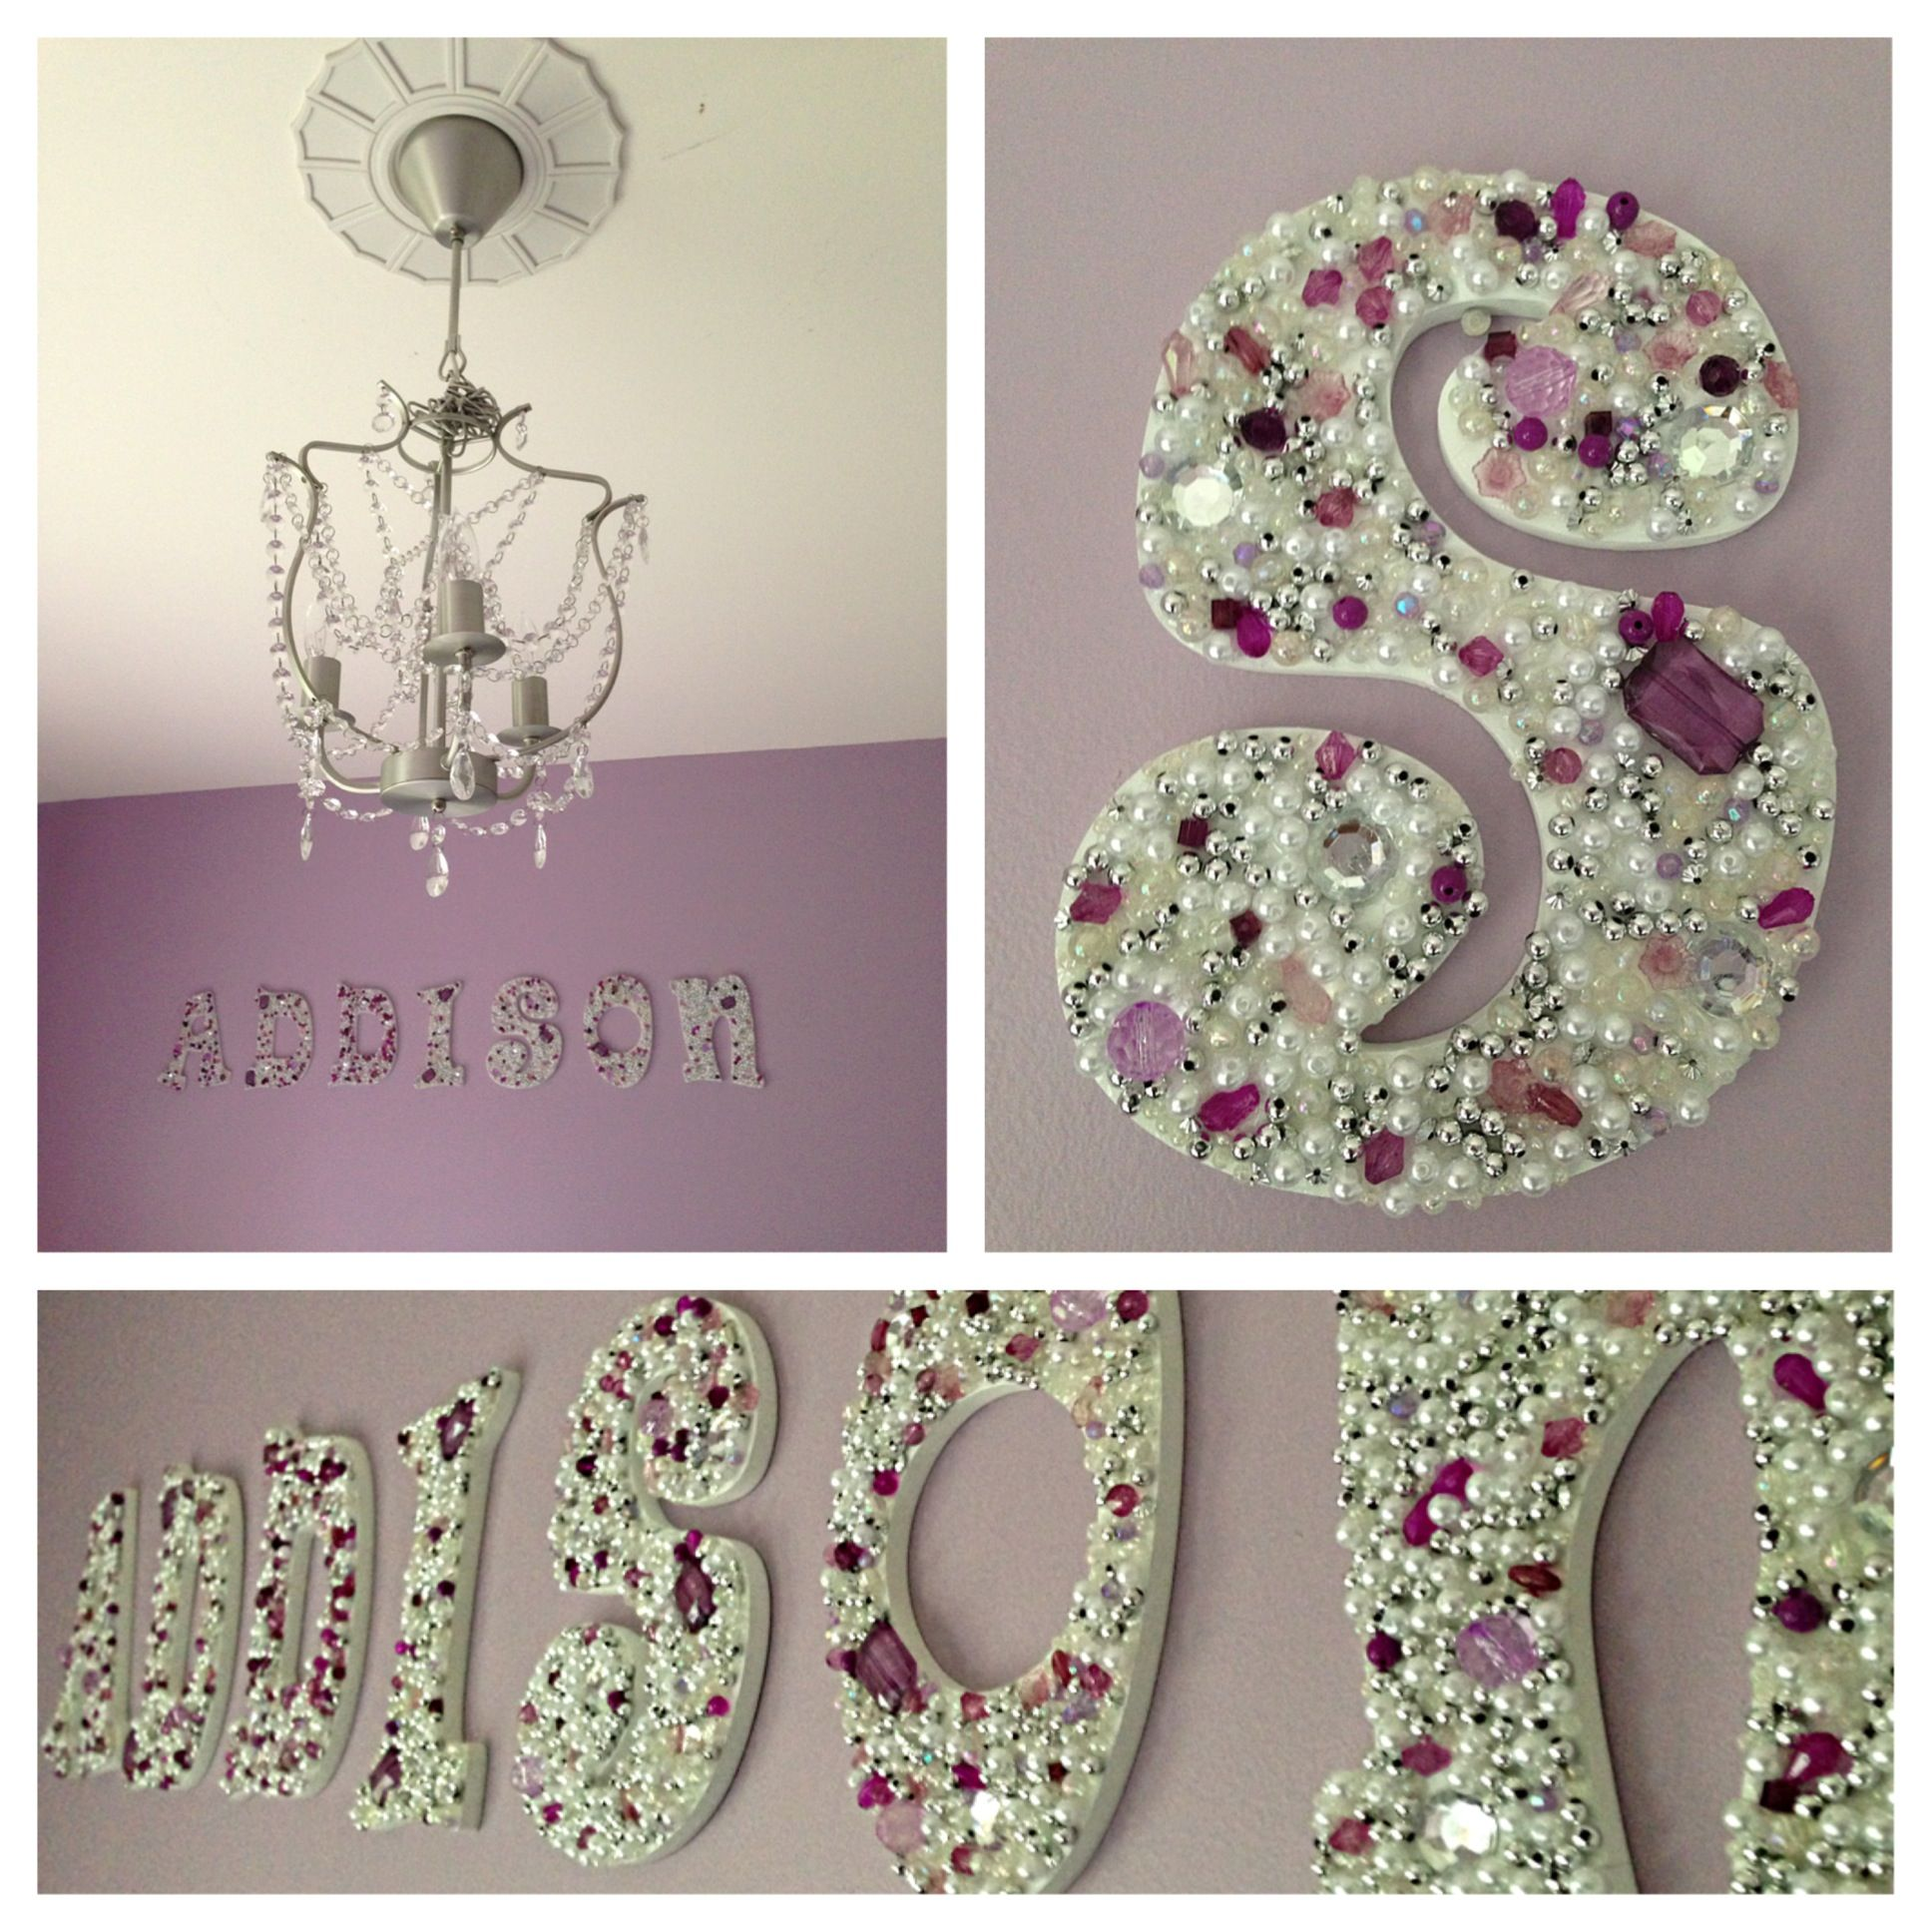 Glass Letters For Wall Diy Jeweled Wooden Letters For Little Girls Roomfuture